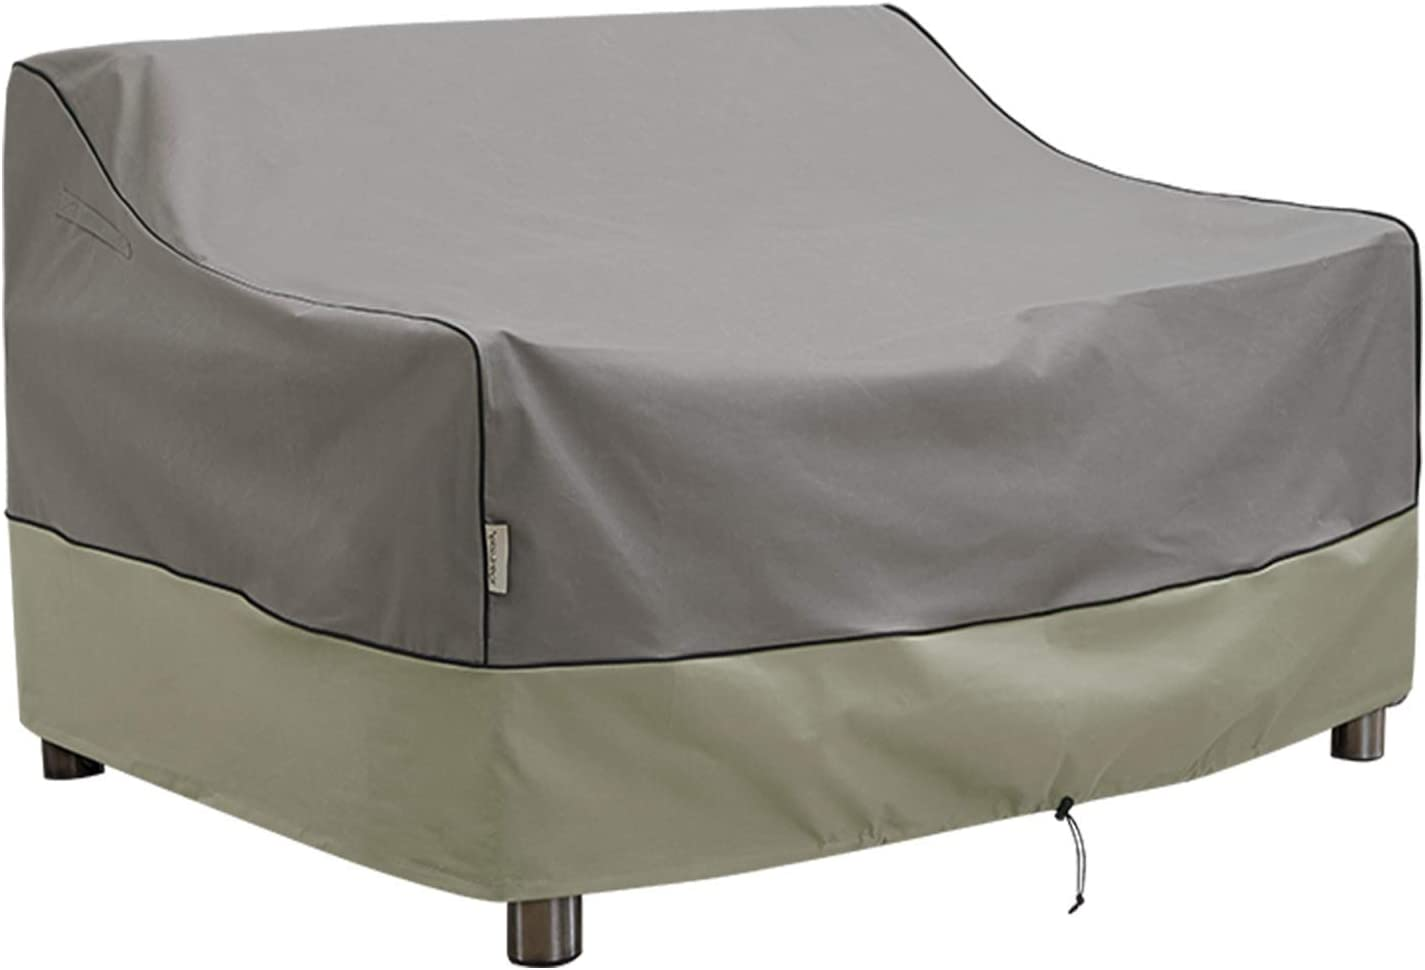 KylinLucky Outdoor Furniture Covers Waterproof, 3-Seater Patio Sofa Cover Fits up to 66 x 36 x 30 inches